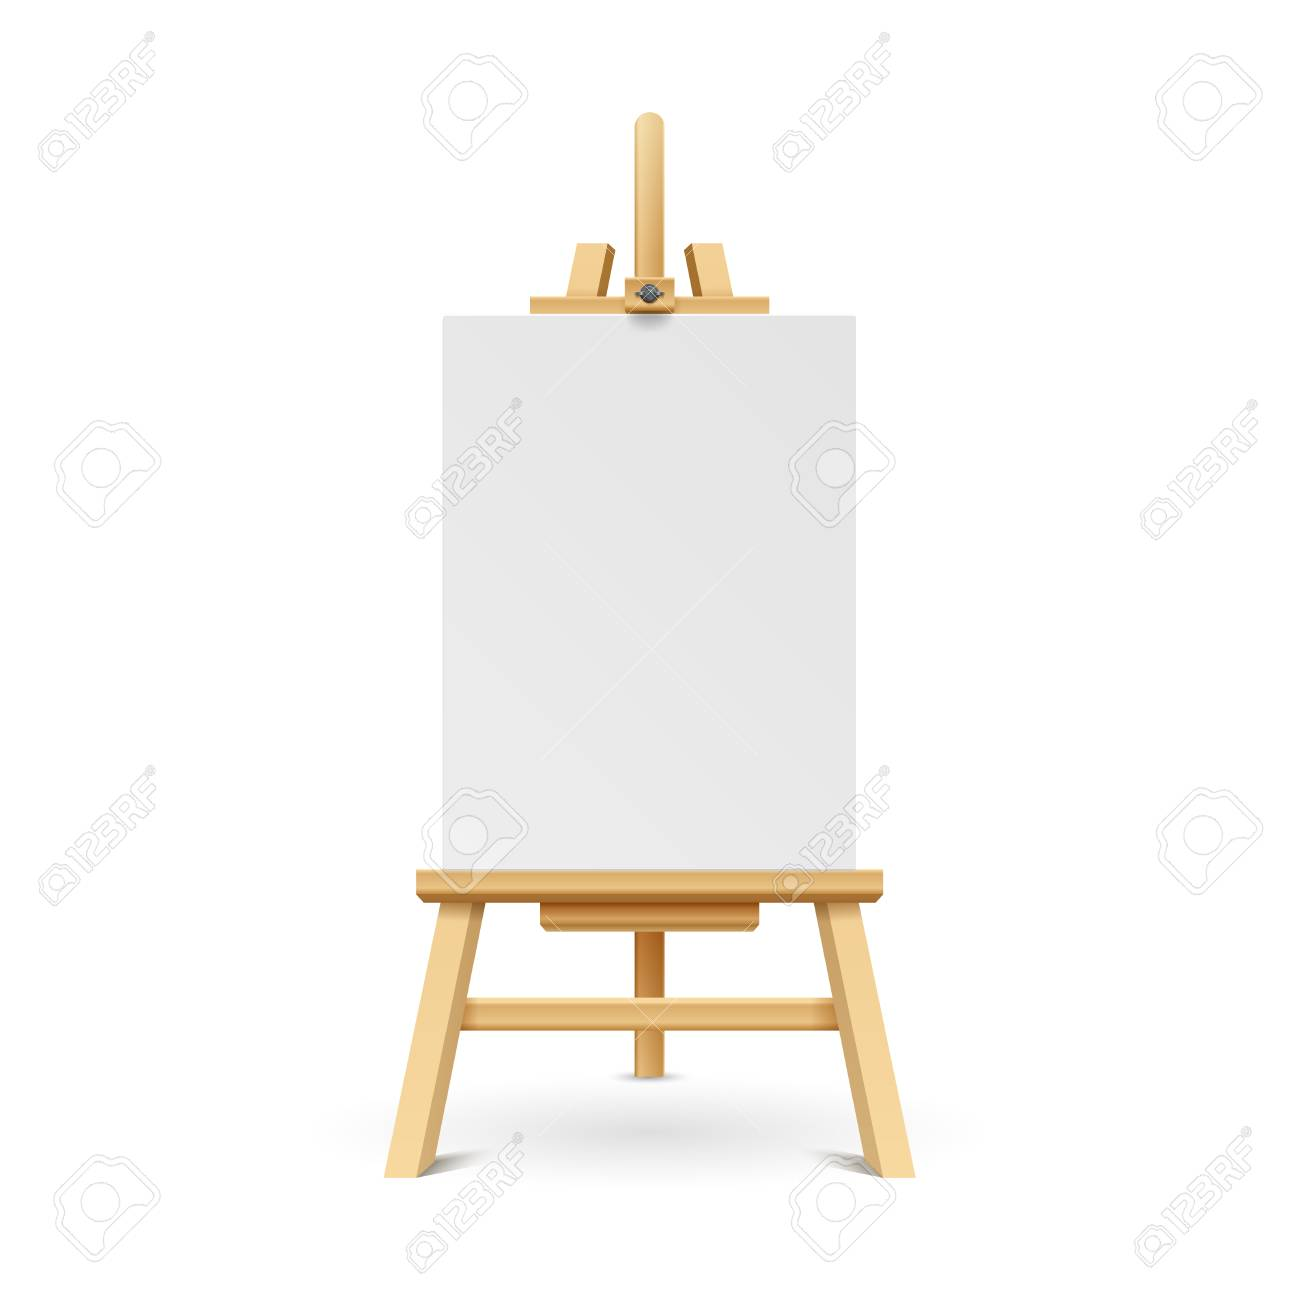 wooden paint board with white empty paper frame art easel stand